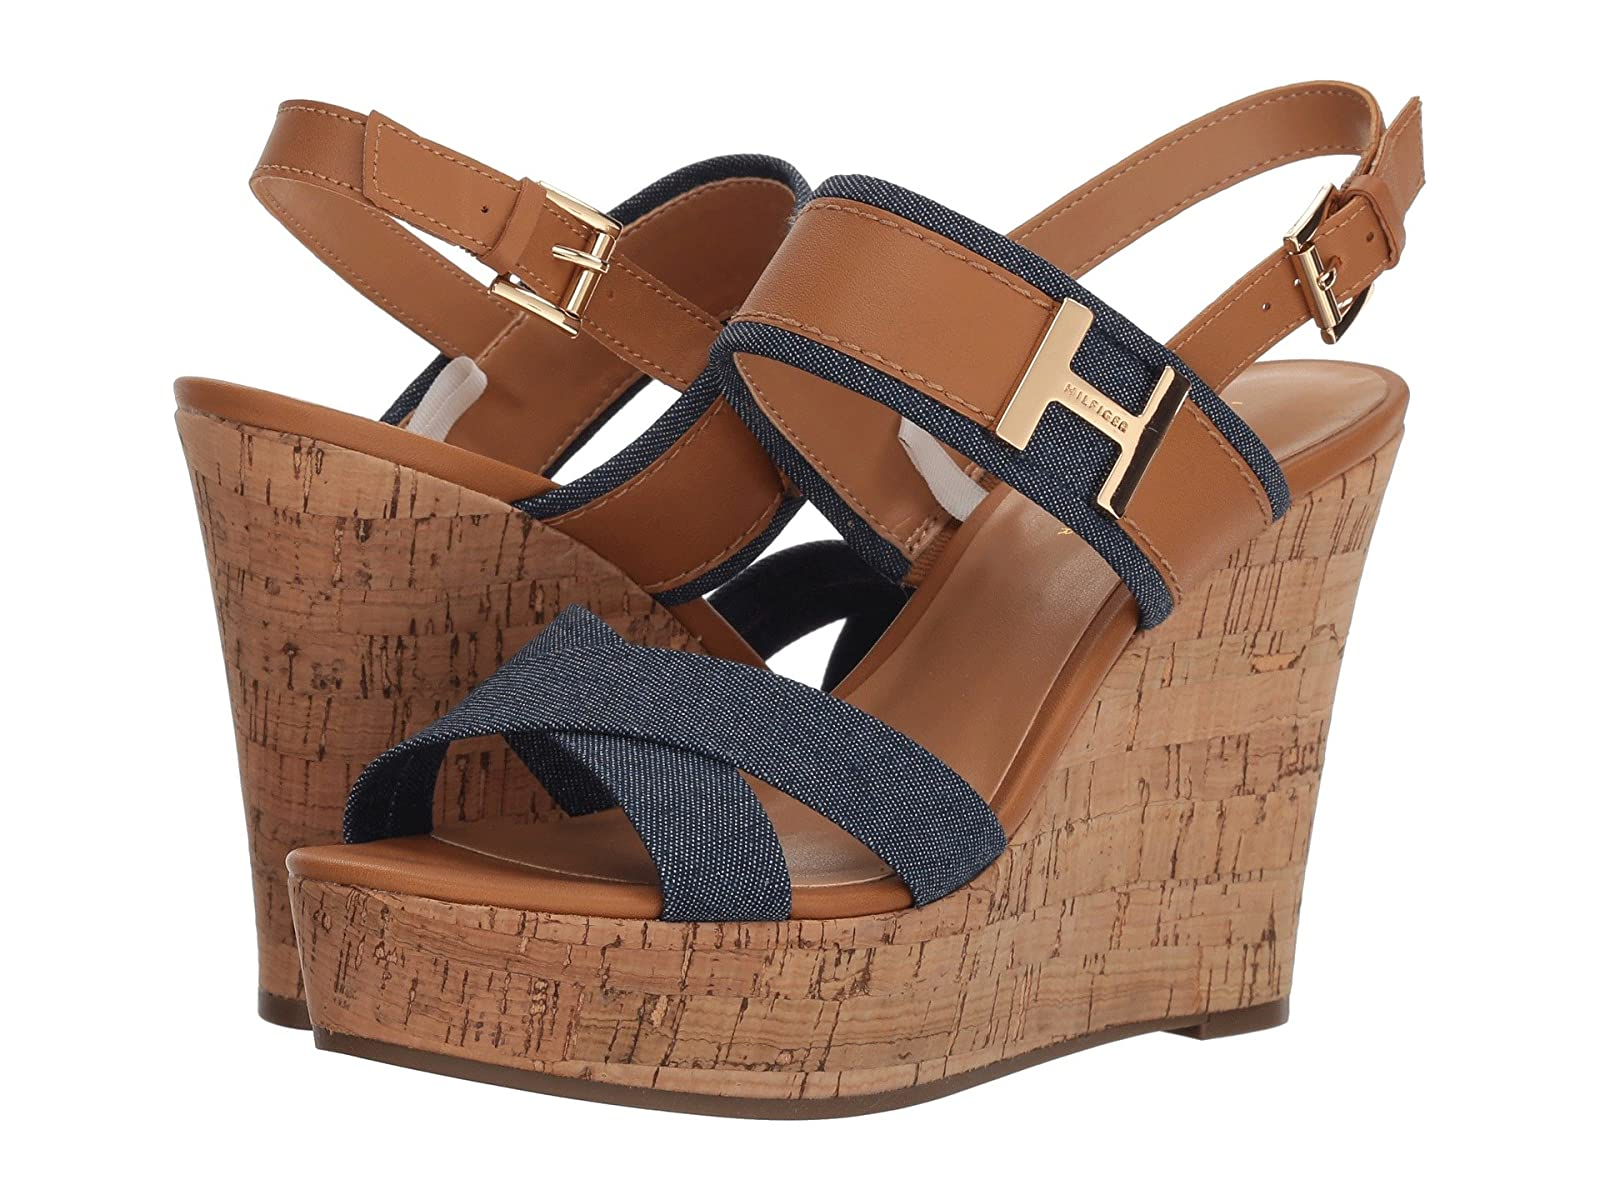 Tommy Hilfiger KallianCheap and distinctive eye-catching shoes